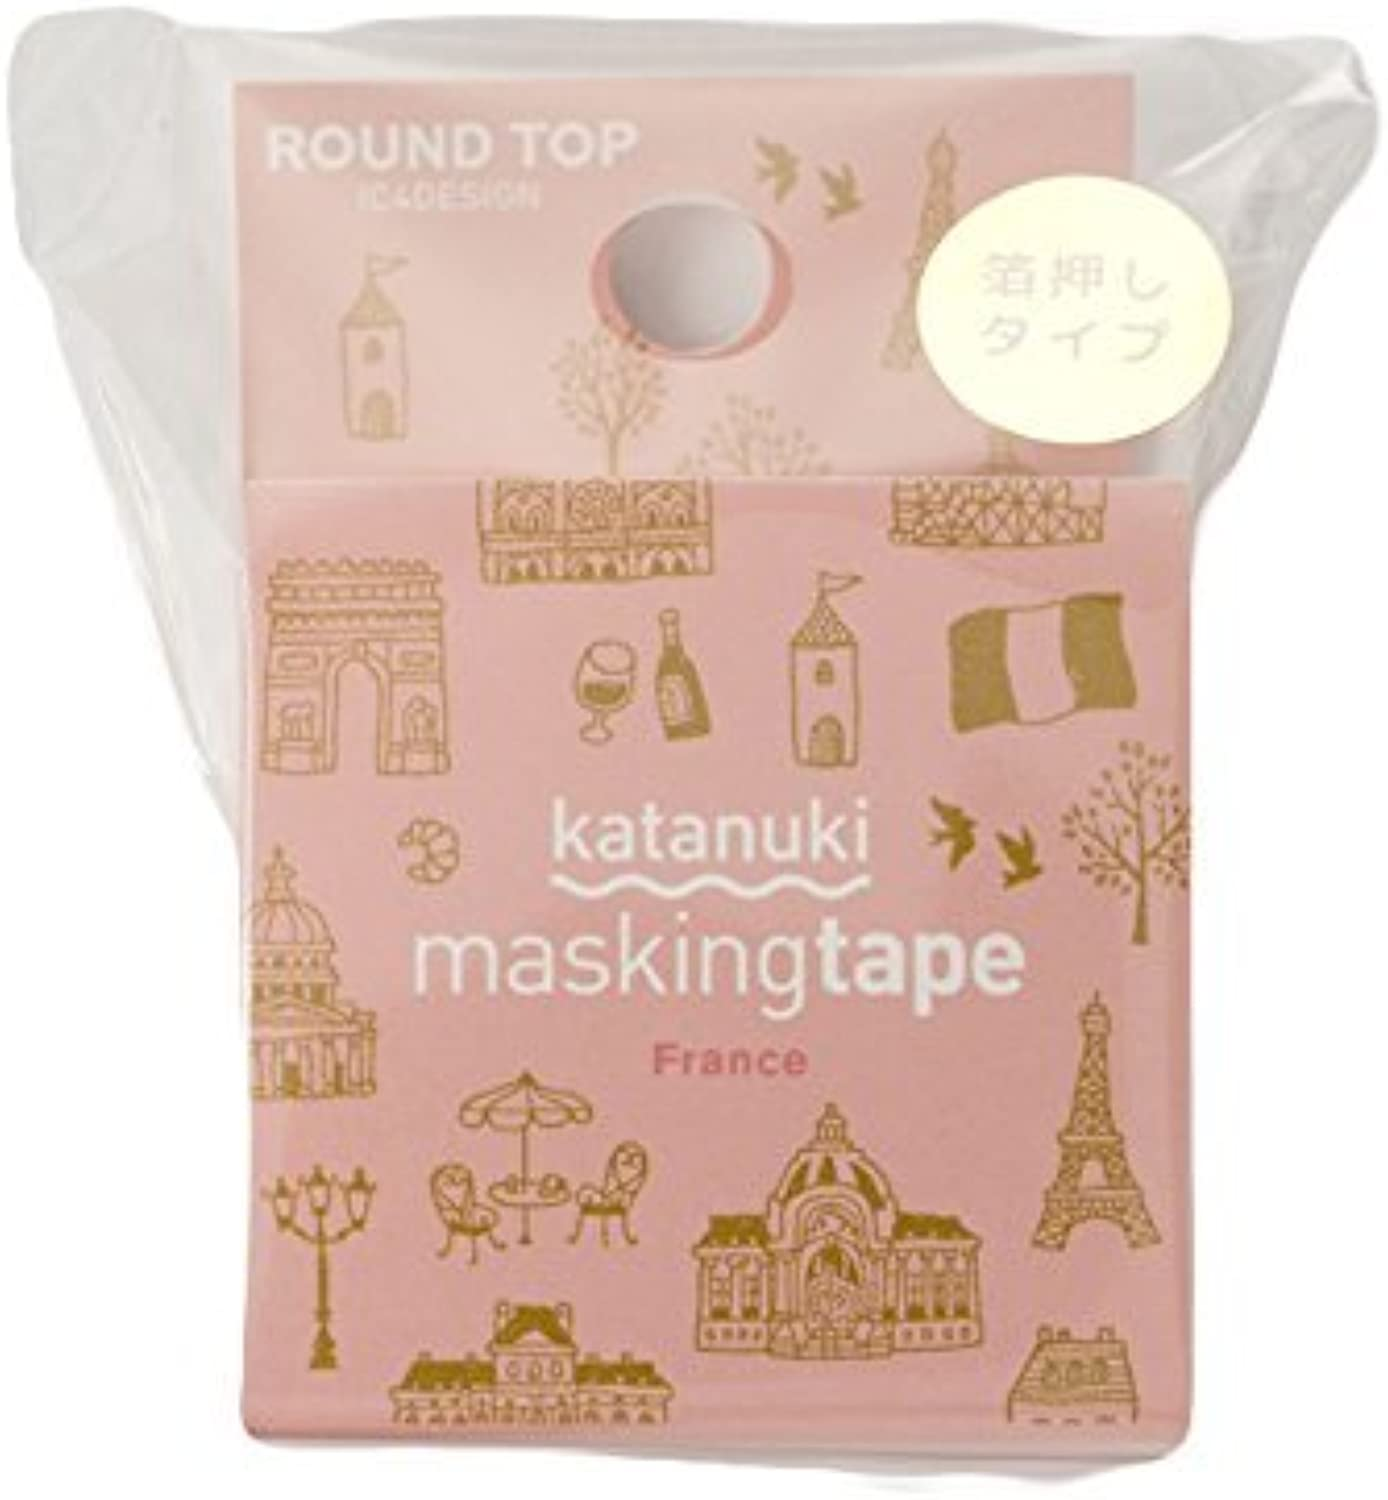 RoundTop Designer's Washi Masking Tape 20mm x 5m, TIPS Plated Masking Tape, France 1 (RT-MK-032) by Round Top B01IQFW7EC     | Ausreichende Versorgung